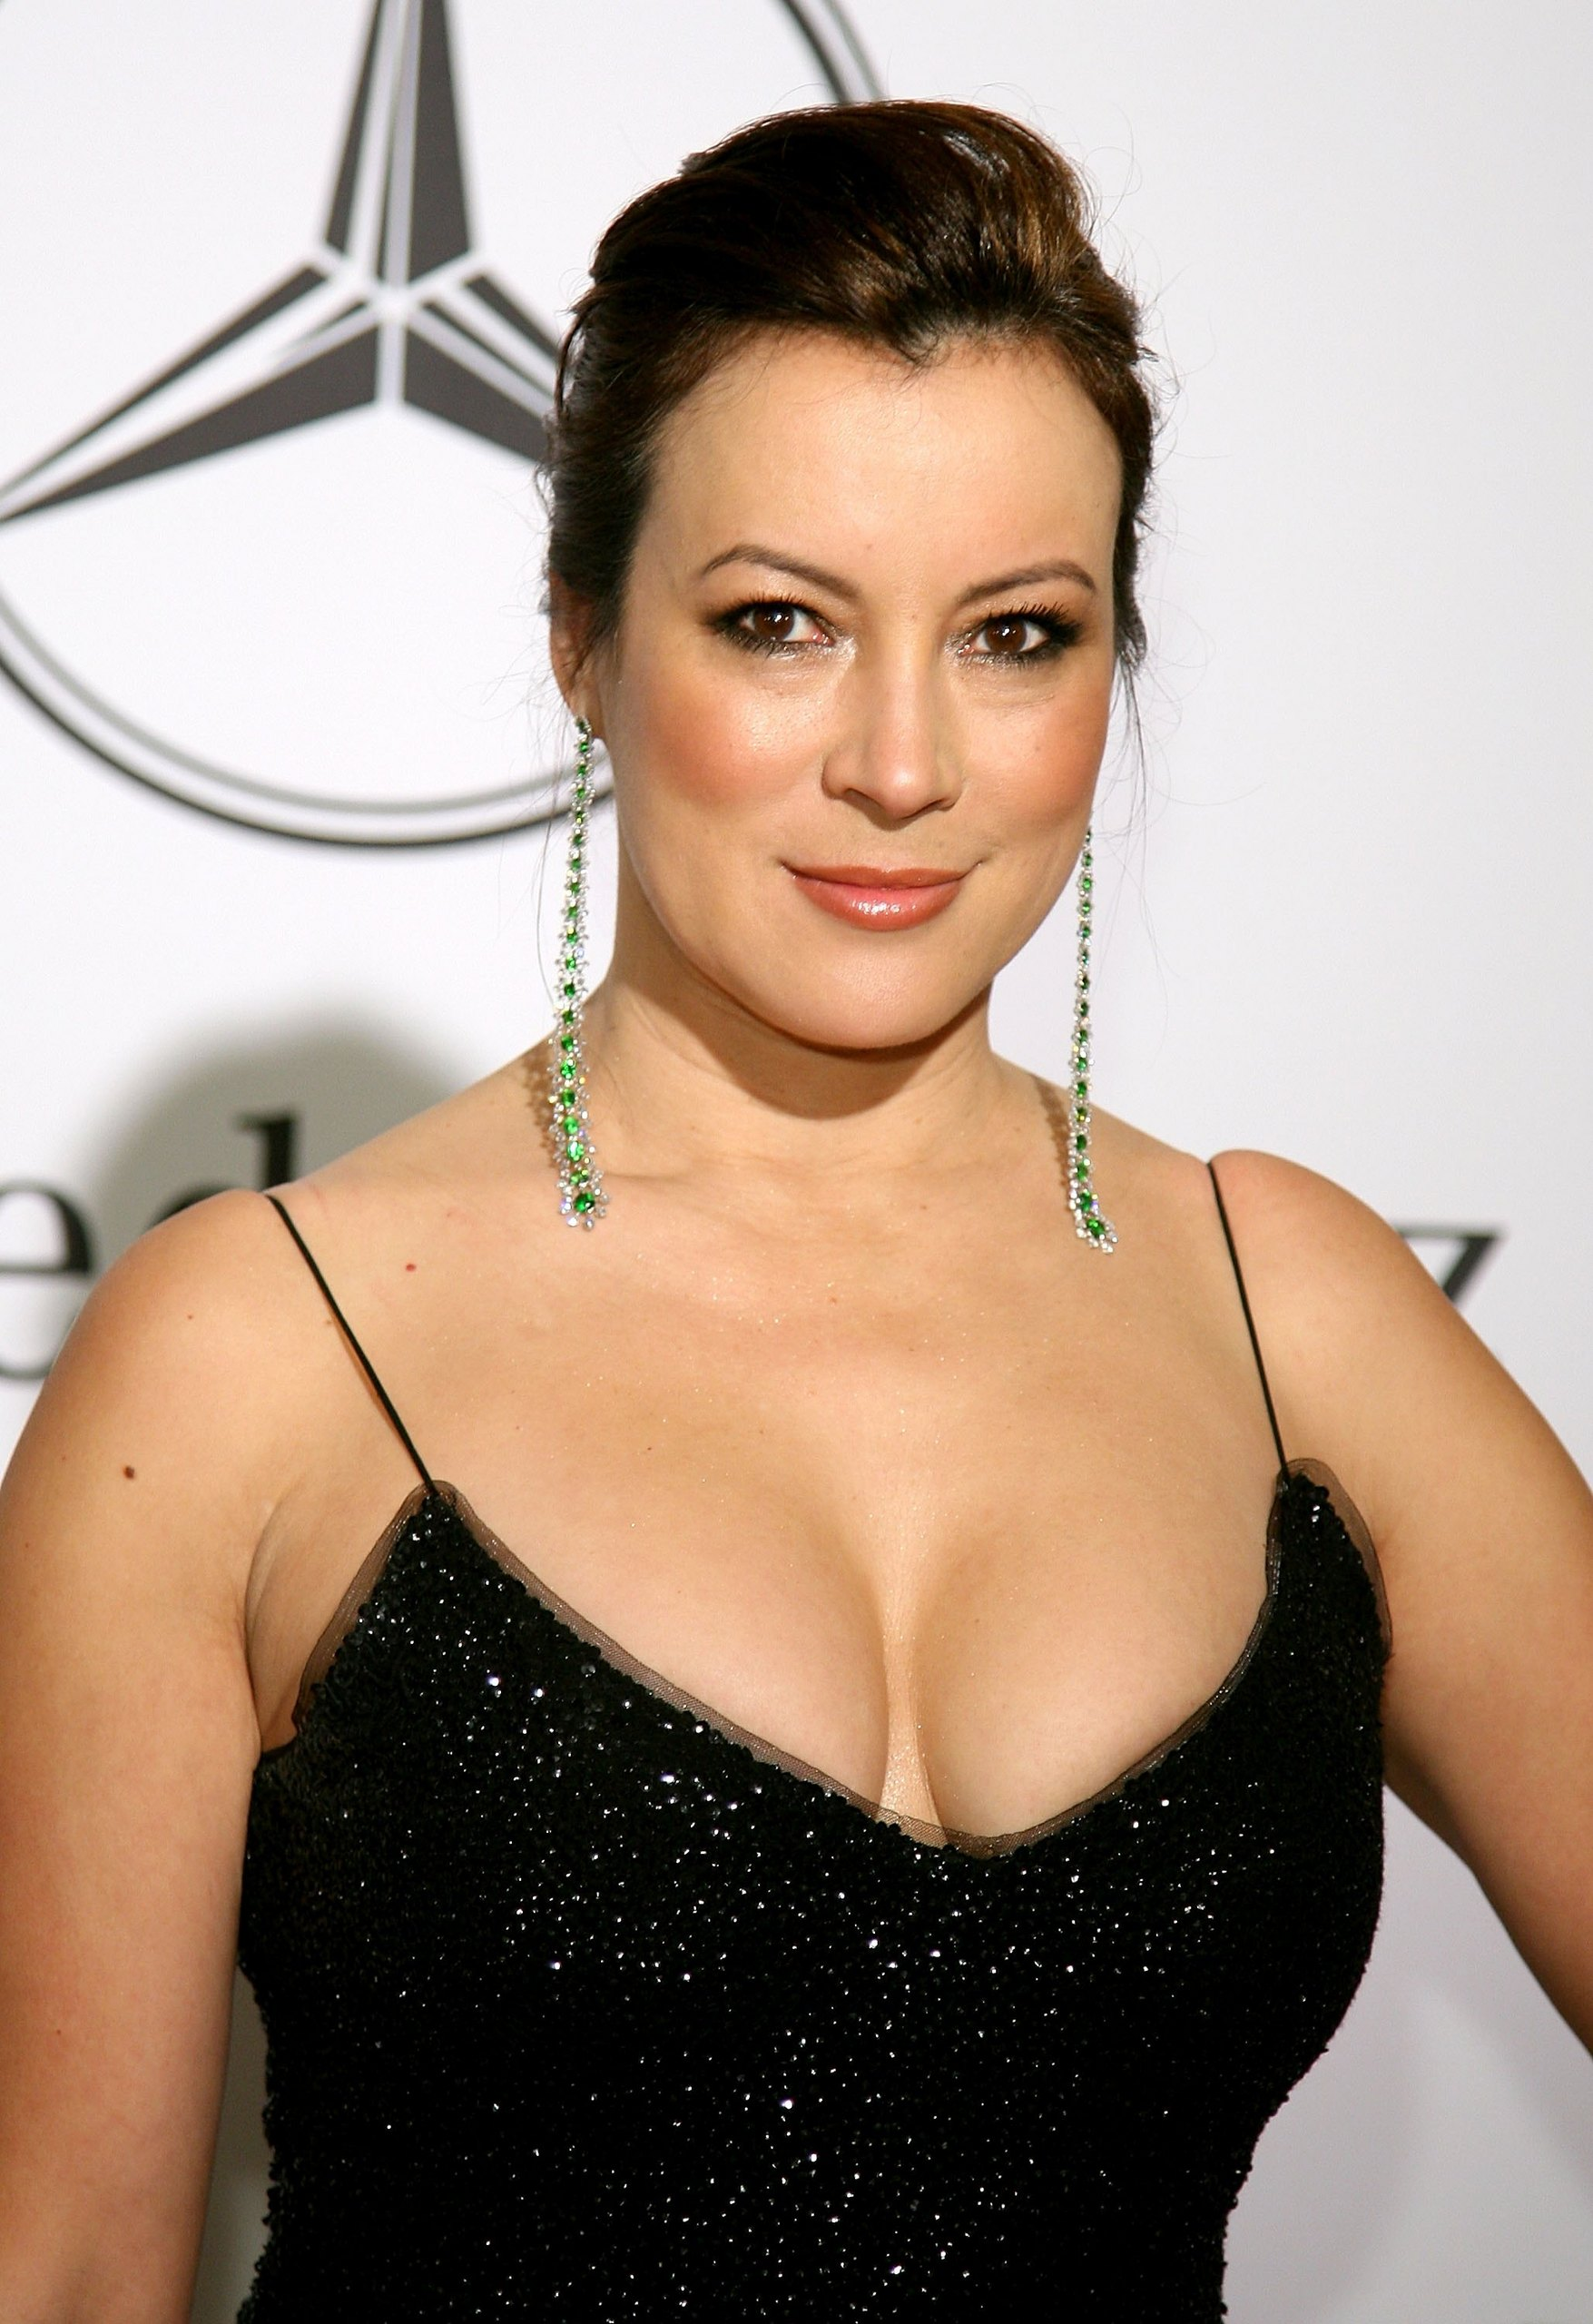 Jennifer Tilly naked (75 photo), Topless, Paparazzi, Feet, butt 2015